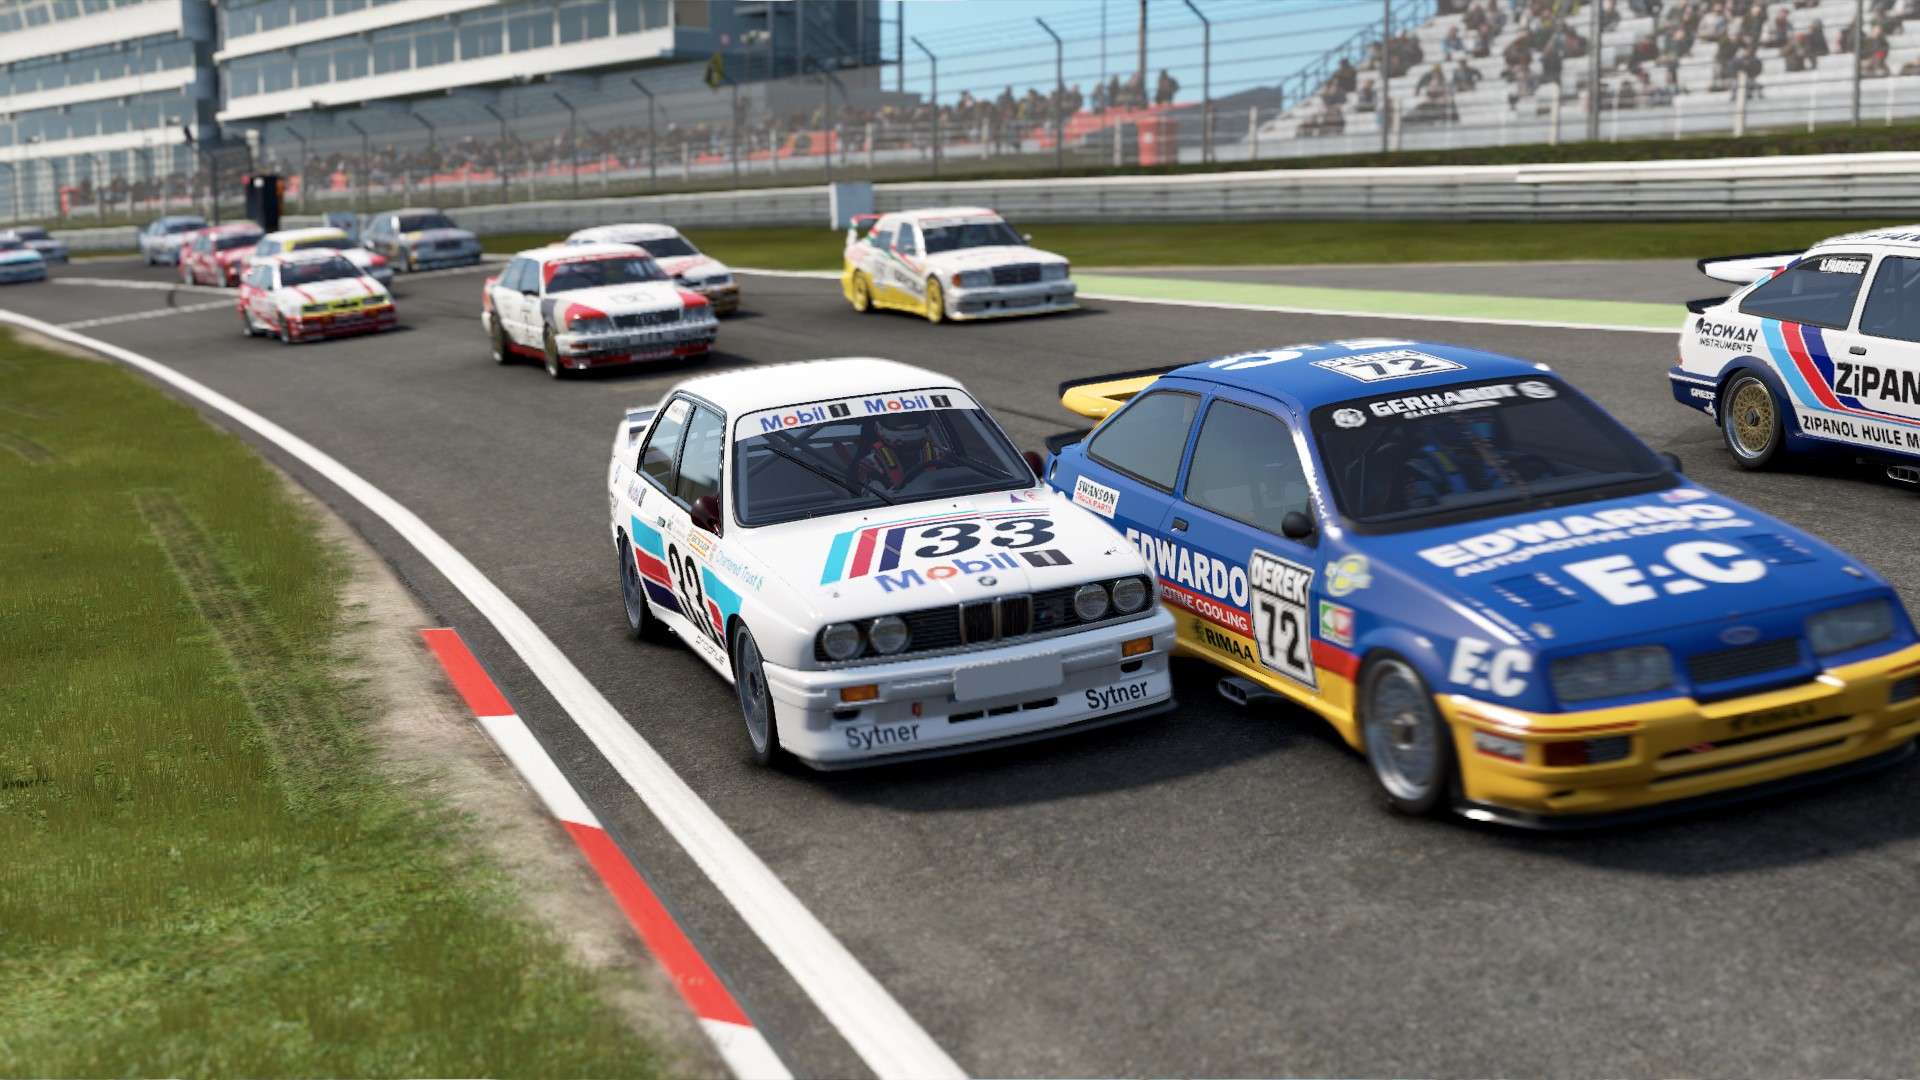 1987 Frank Sytner BTCC BMW M3 – Project Cars 2